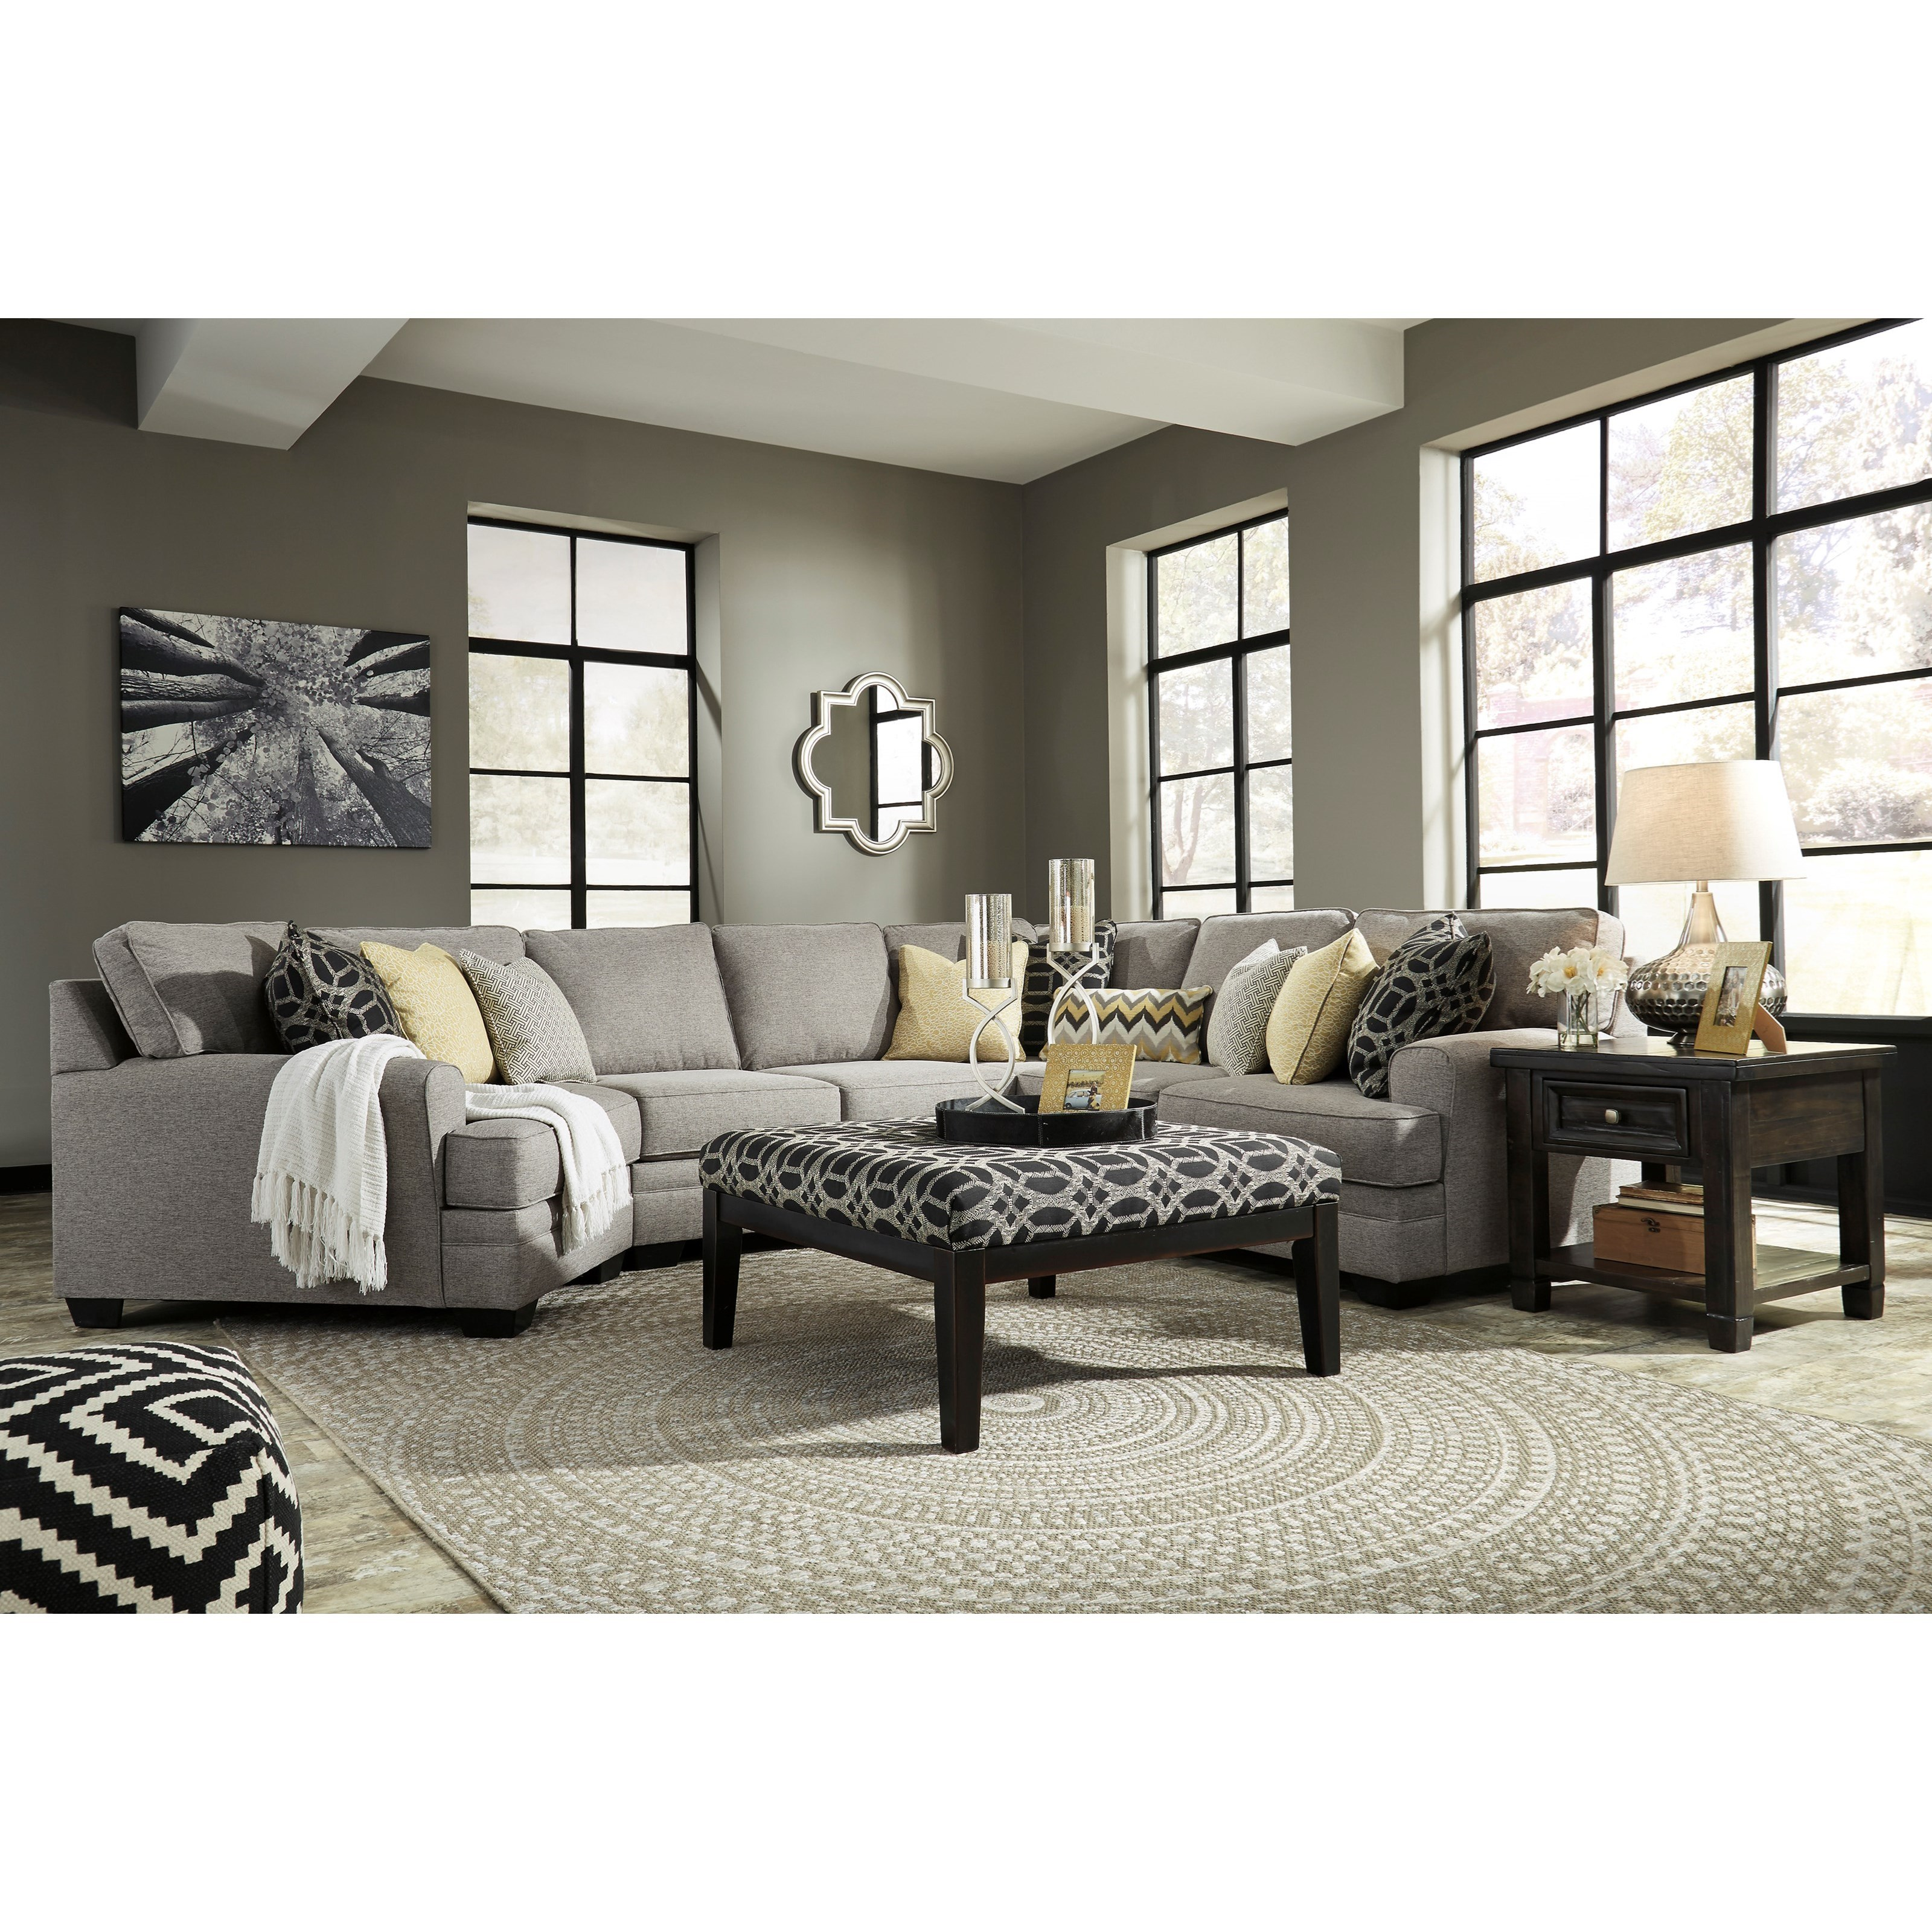 Benchcraft By Ashley Cresson Stationary Living Room Group Royal Furniture Stationary Living